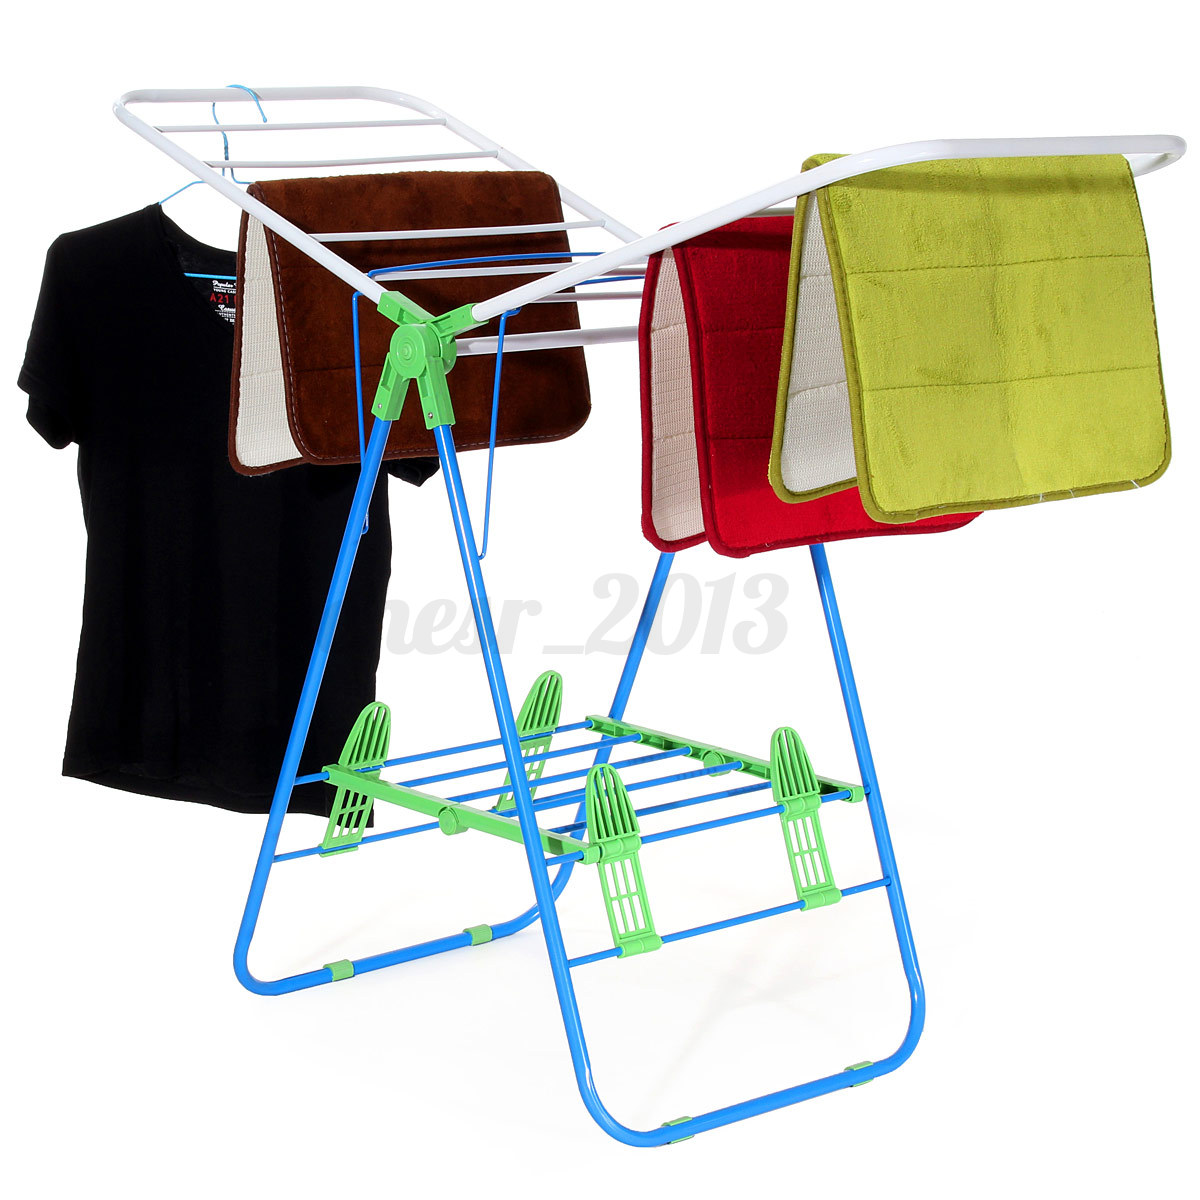 clothes drying y airer dry rack indoor folding garment laundry dryer hanger ebay. Black Bedroom Furniture Sets. Home Design Ideas